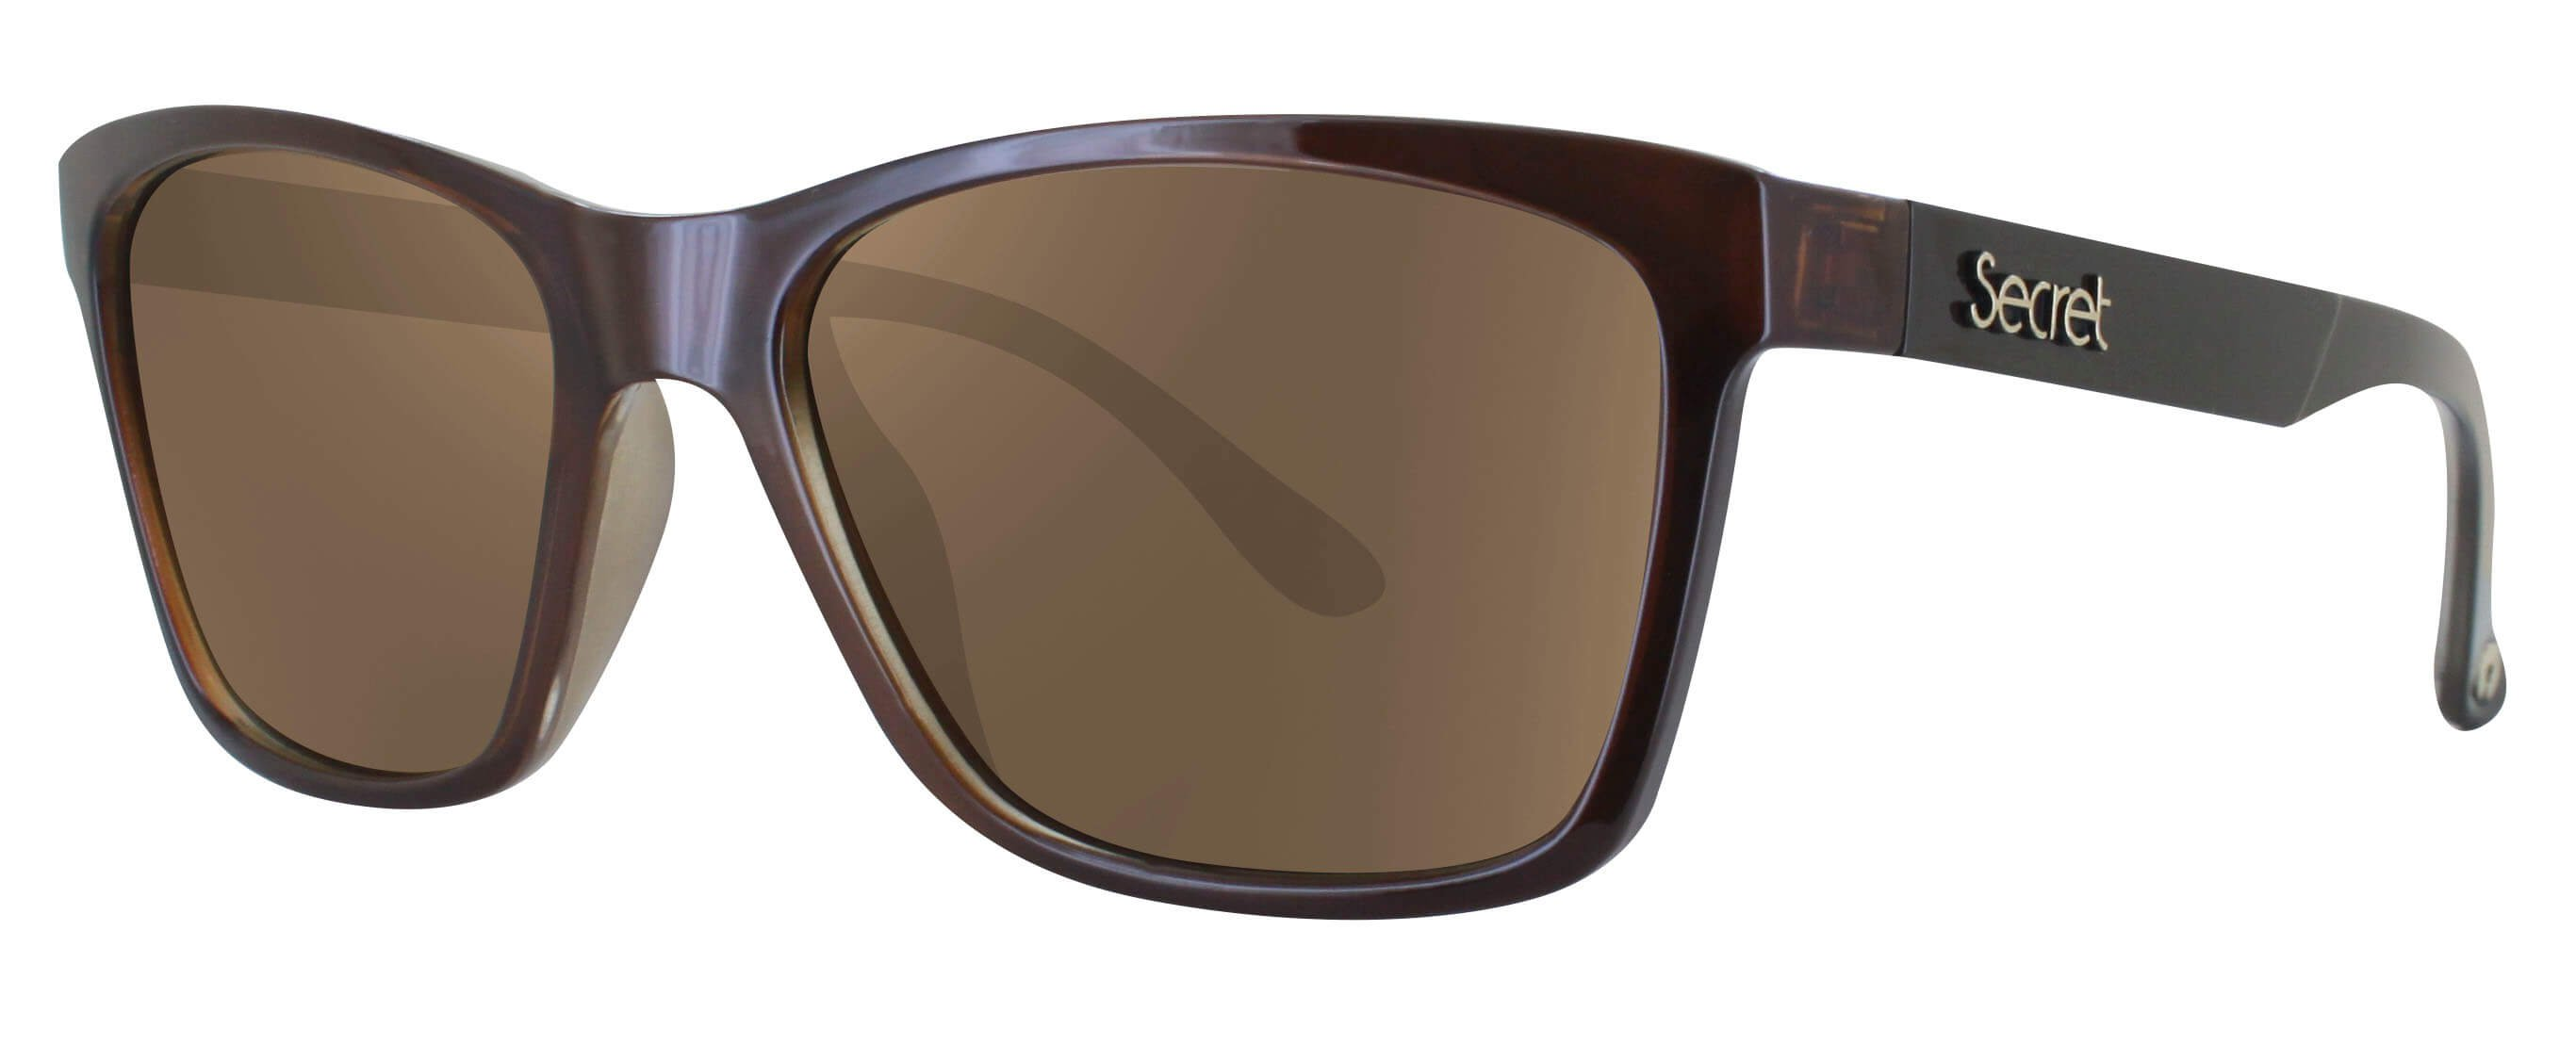 ÓC SECRET SOPHIA BROWN COGNAC / POLARIZED BROWN